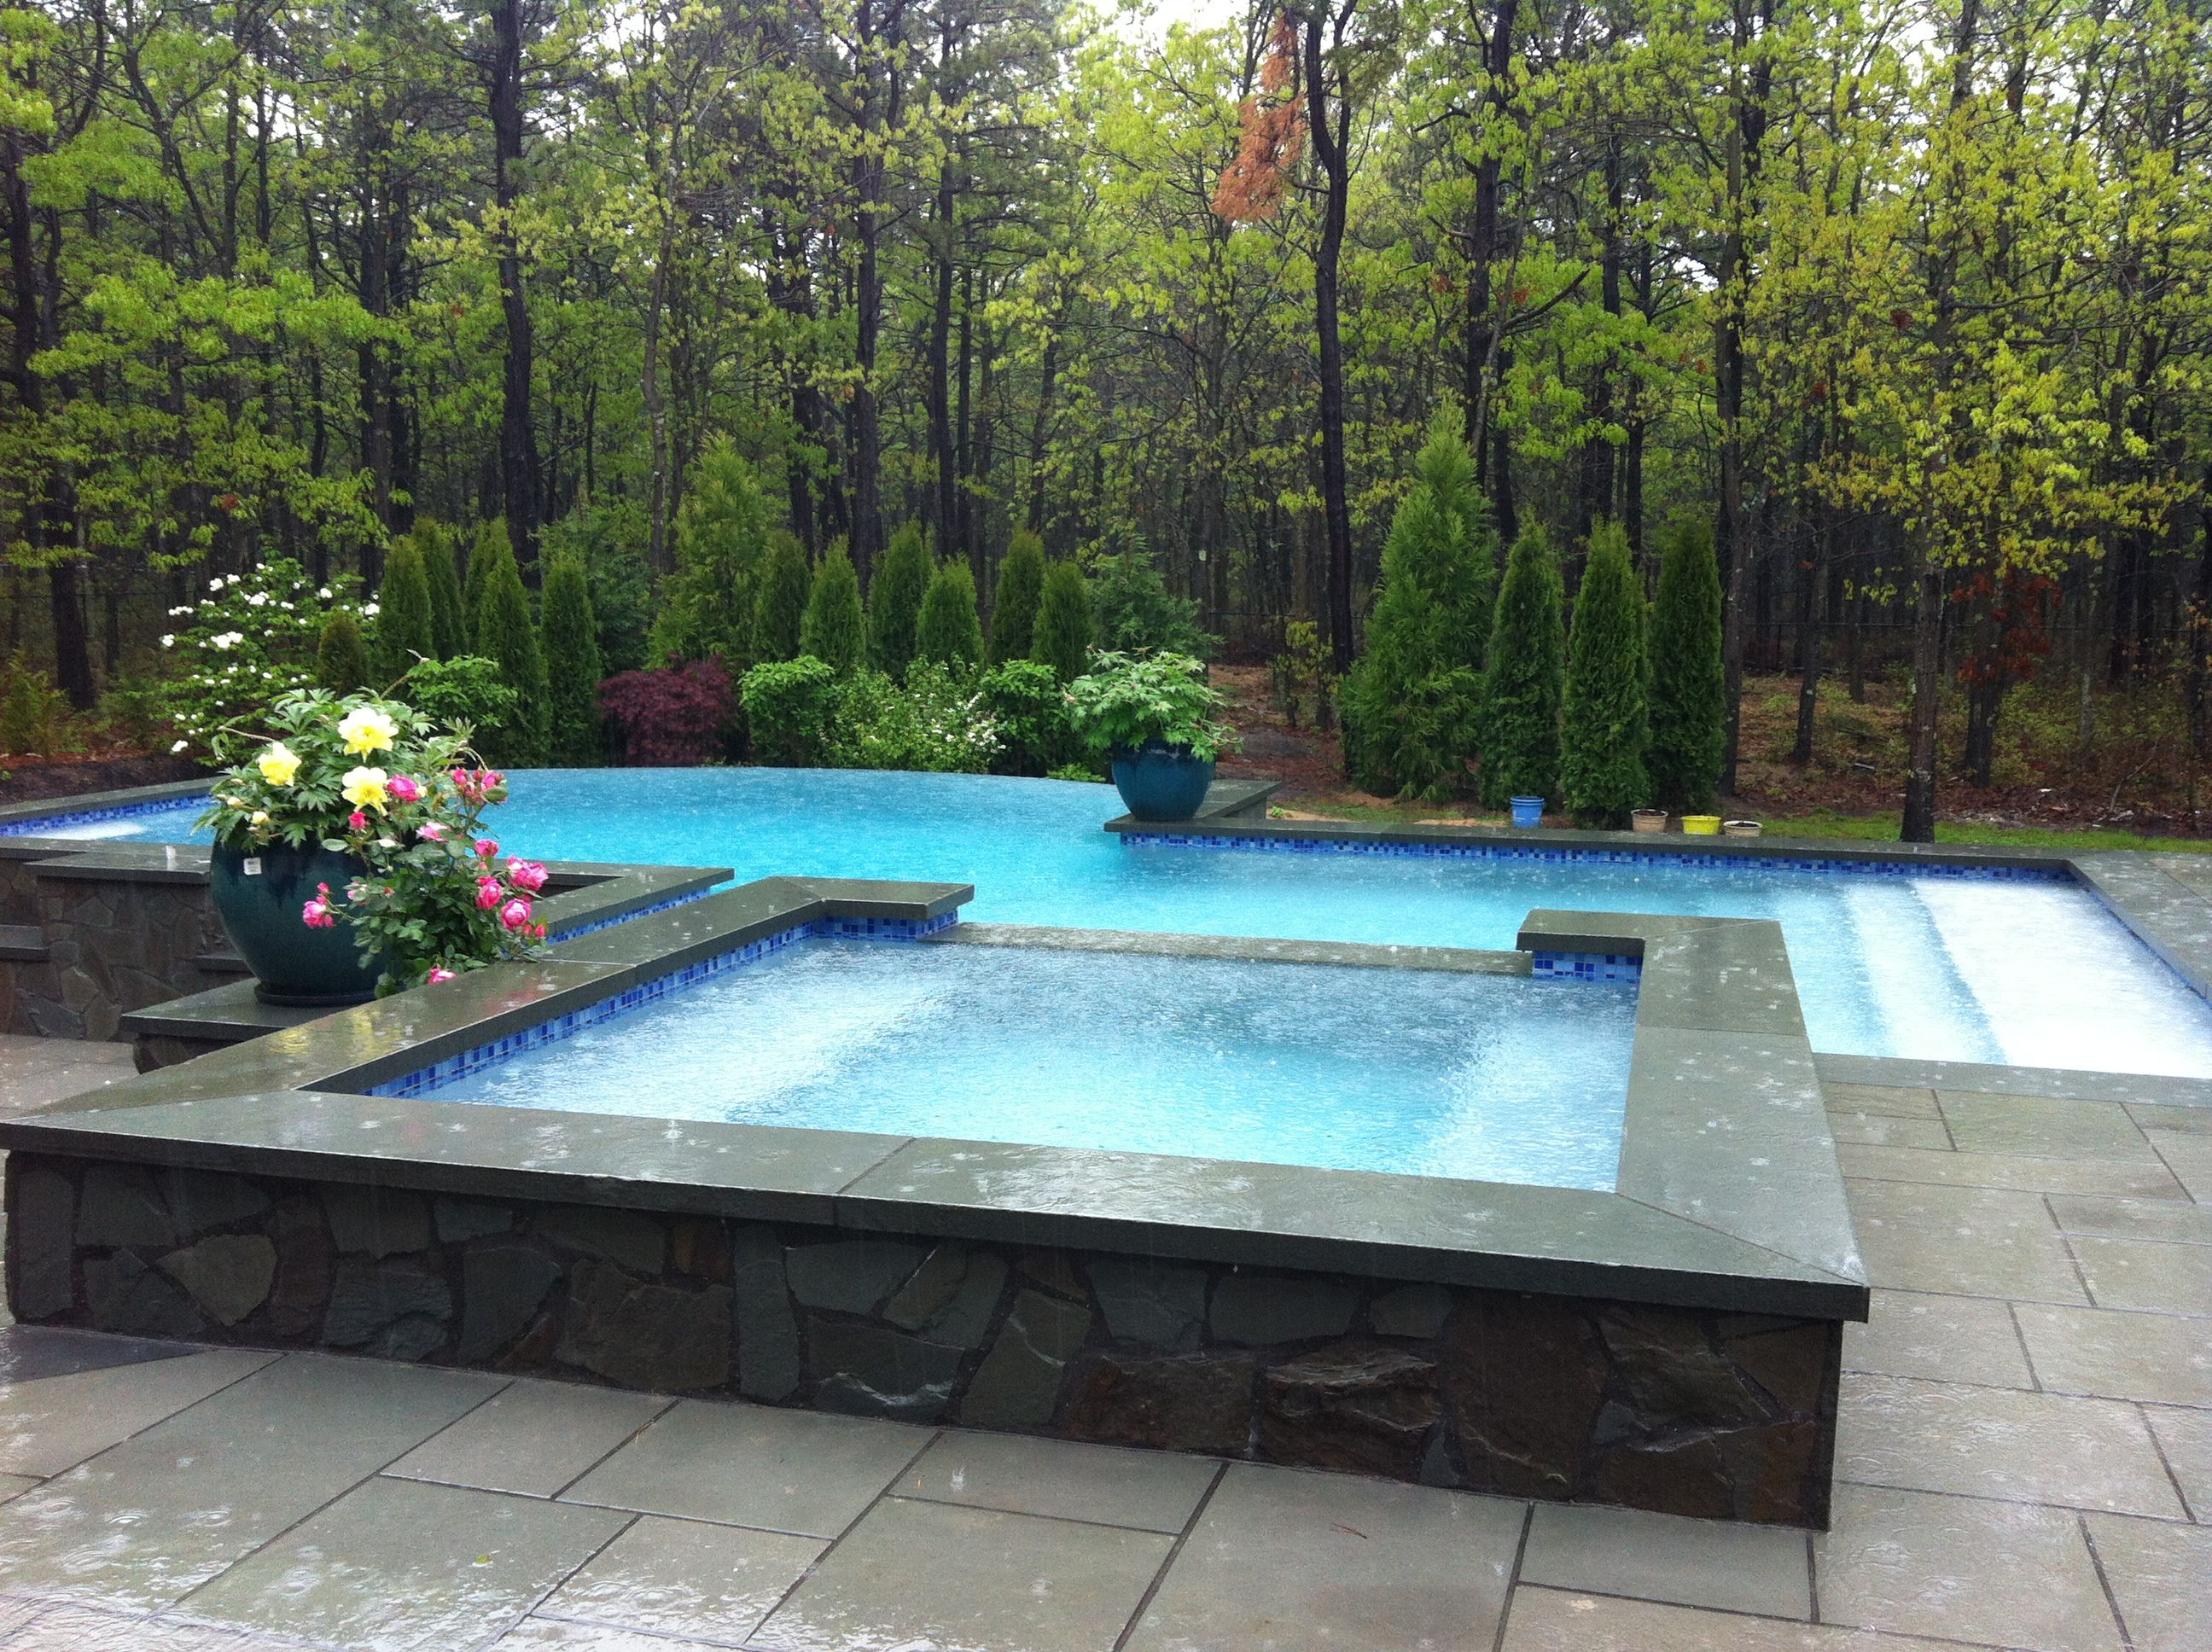 1000 images about pools on pinterest backyards pools and pool designs